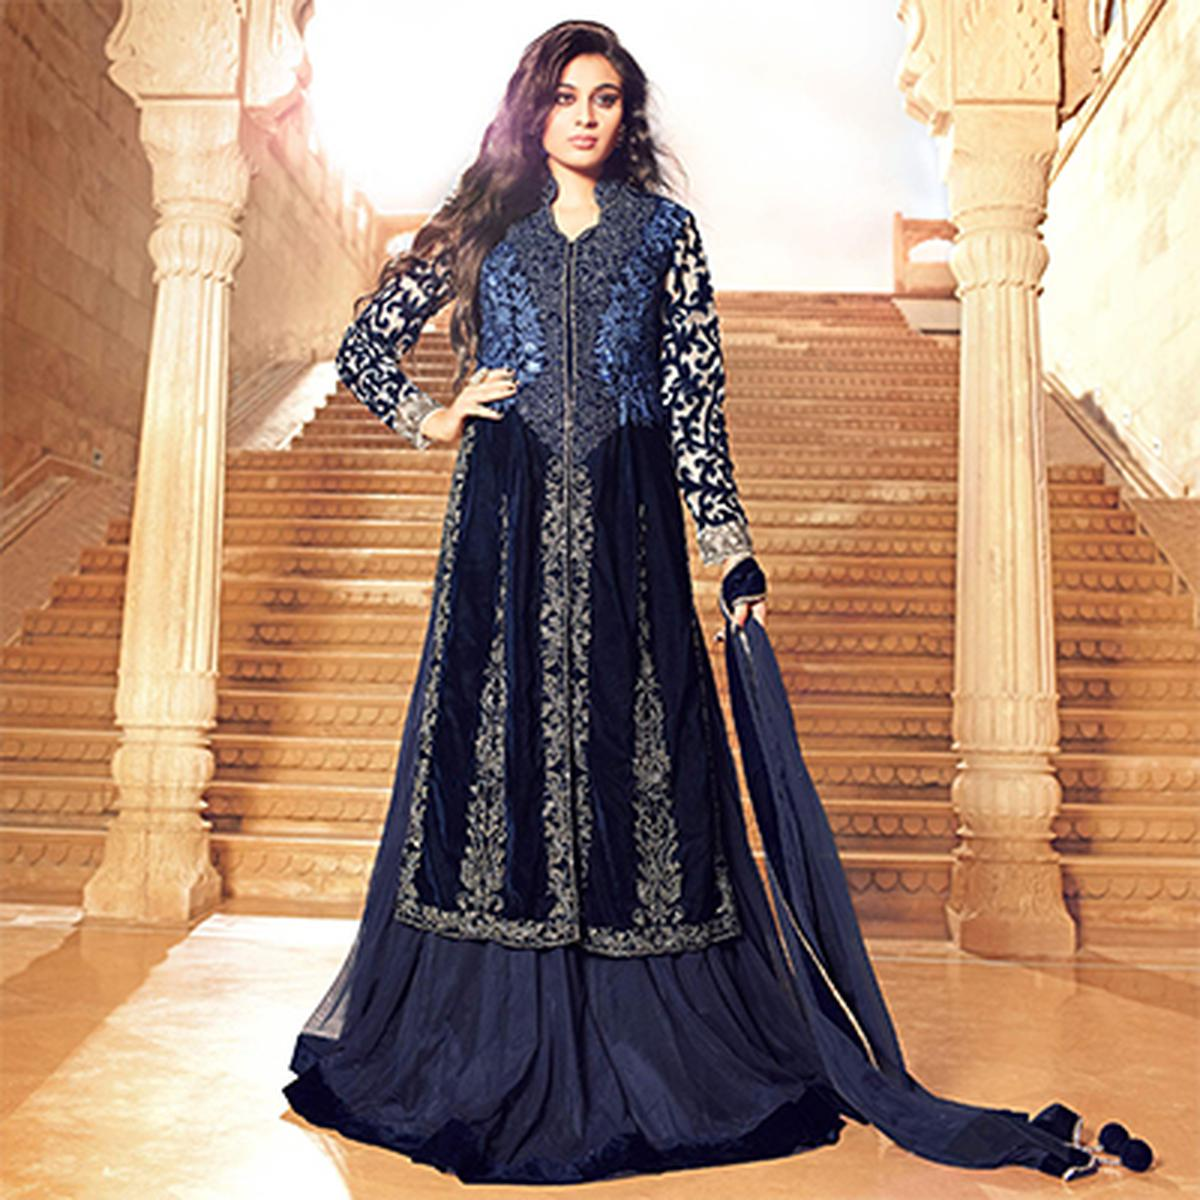 Navy Blue Net & Velvet Lehenga Suit for Wedding Reception